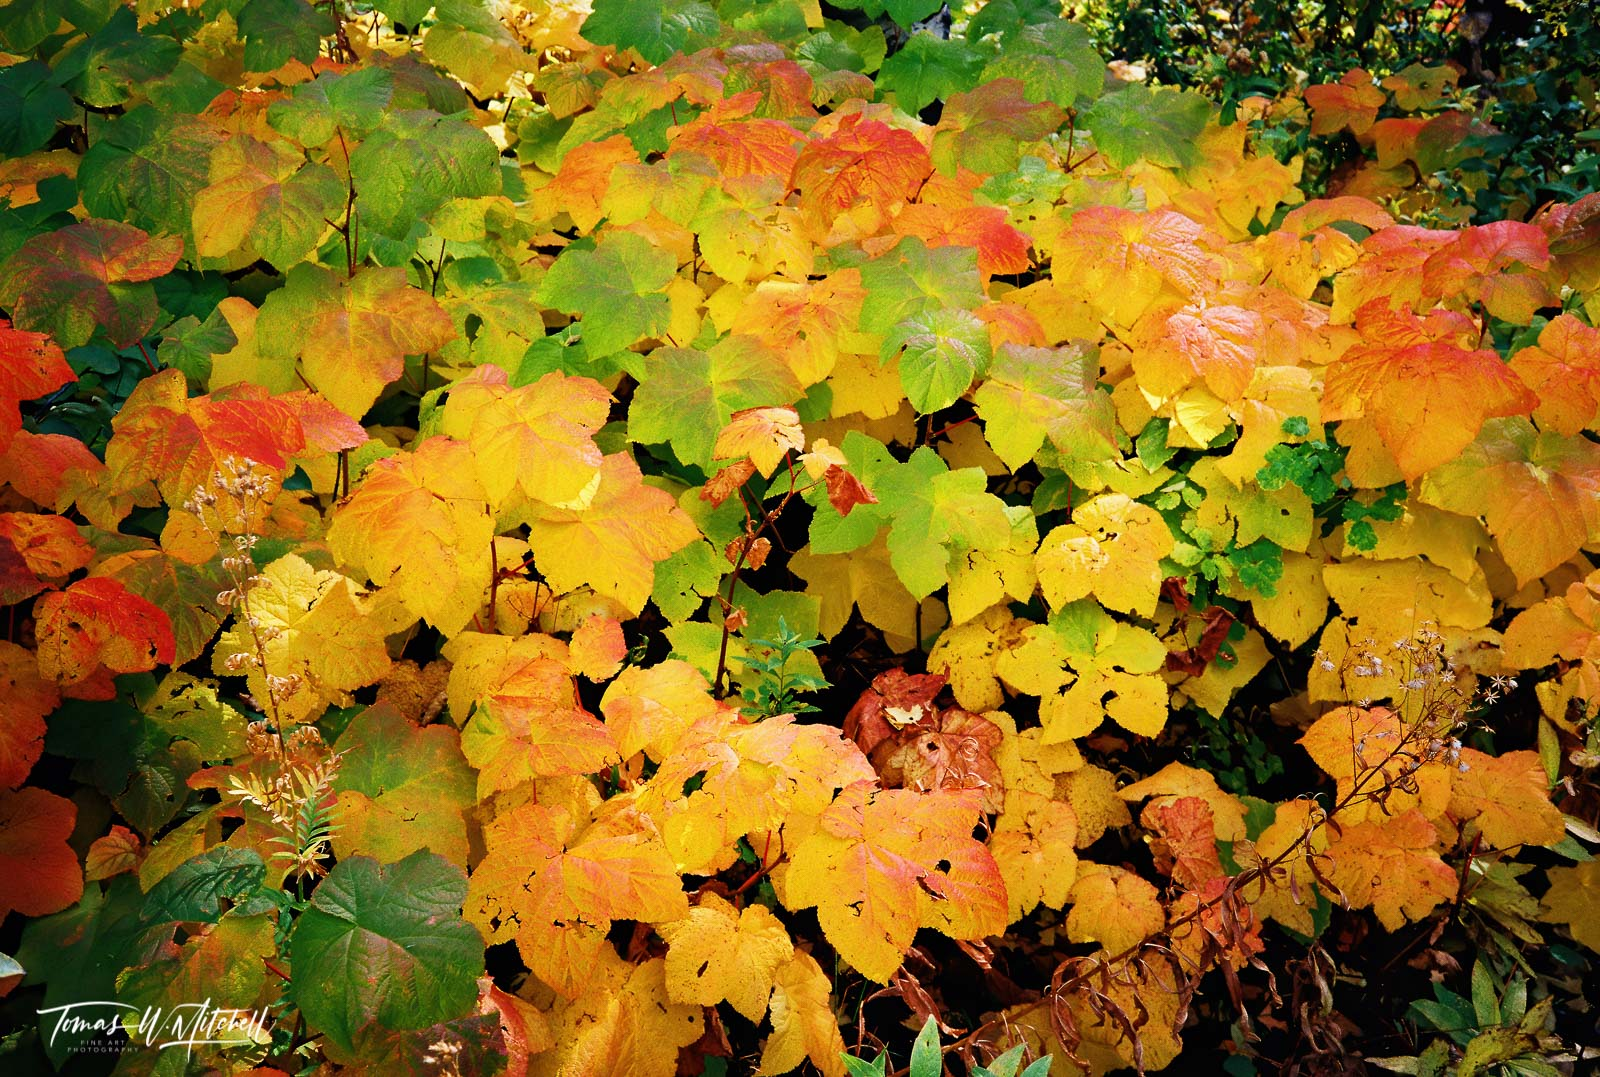 limited edition, fine art, prints, photograph, film, alaska, photographing, seward, portage, devil's club, fall, colors, yellow, green, reds, leaves, photo